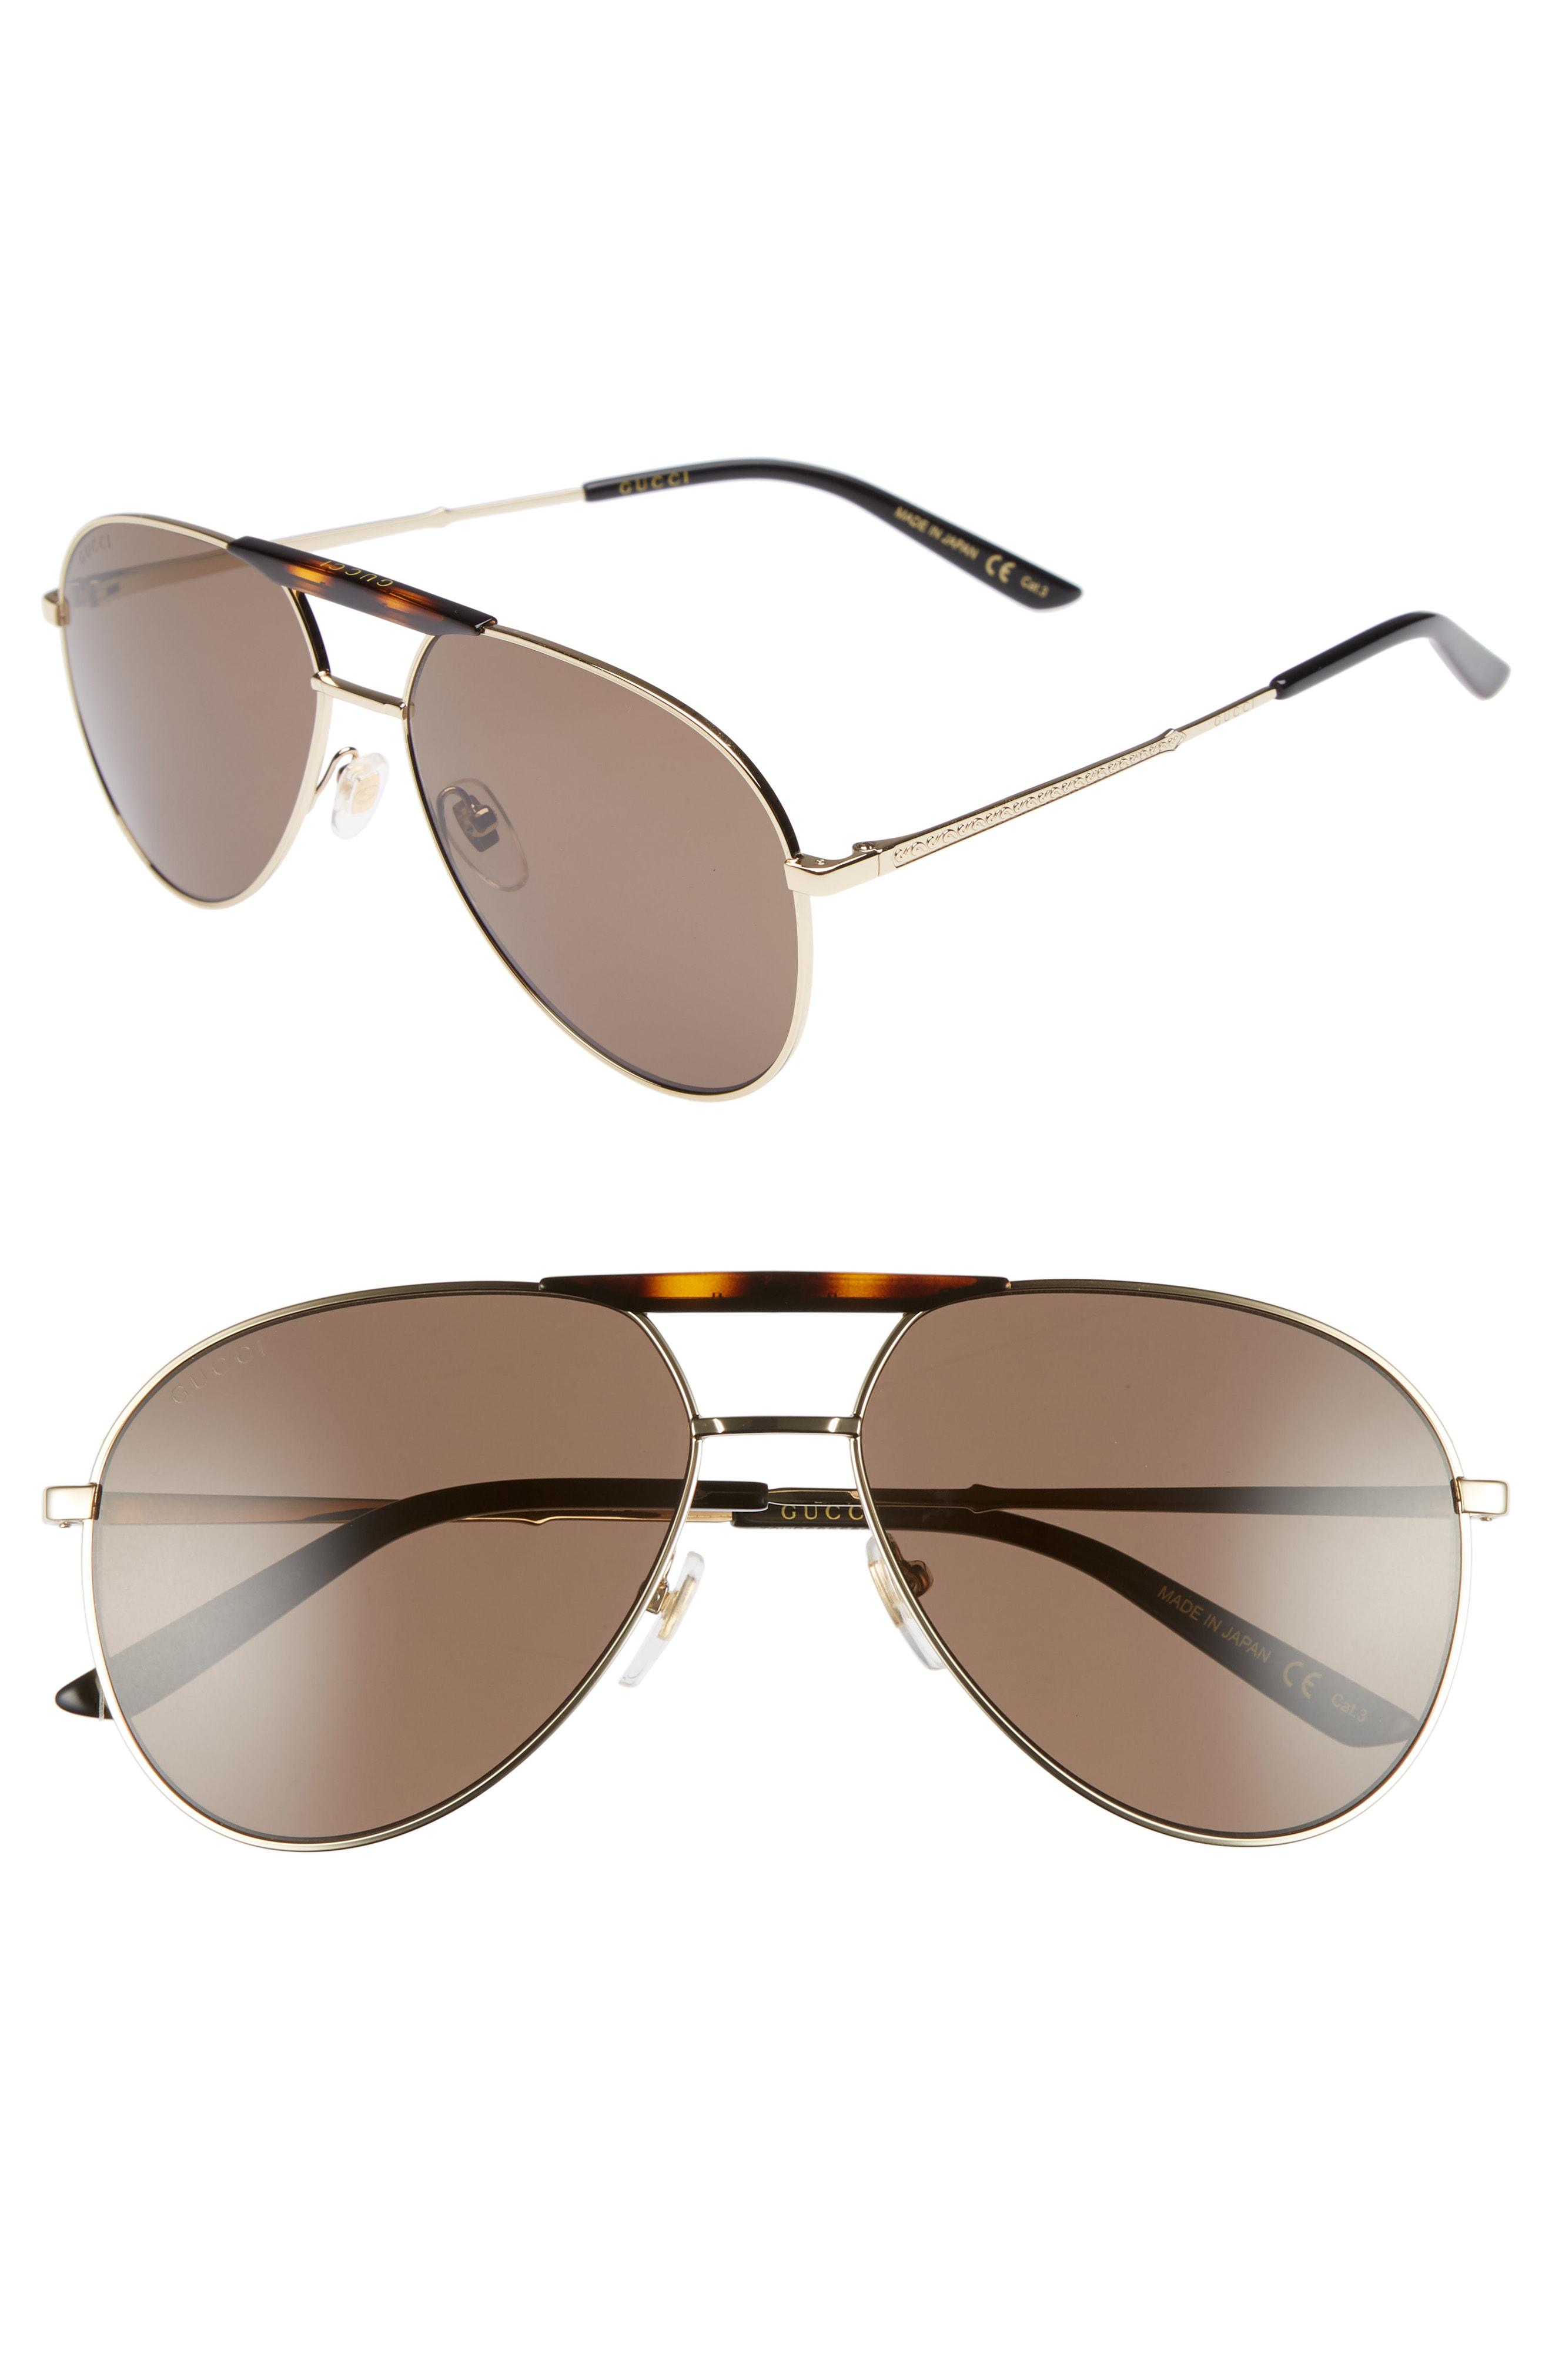 d9a73c9e9b4ce Lyst - Gucci Cruise 59mm Aviator Sunglasses - for Men